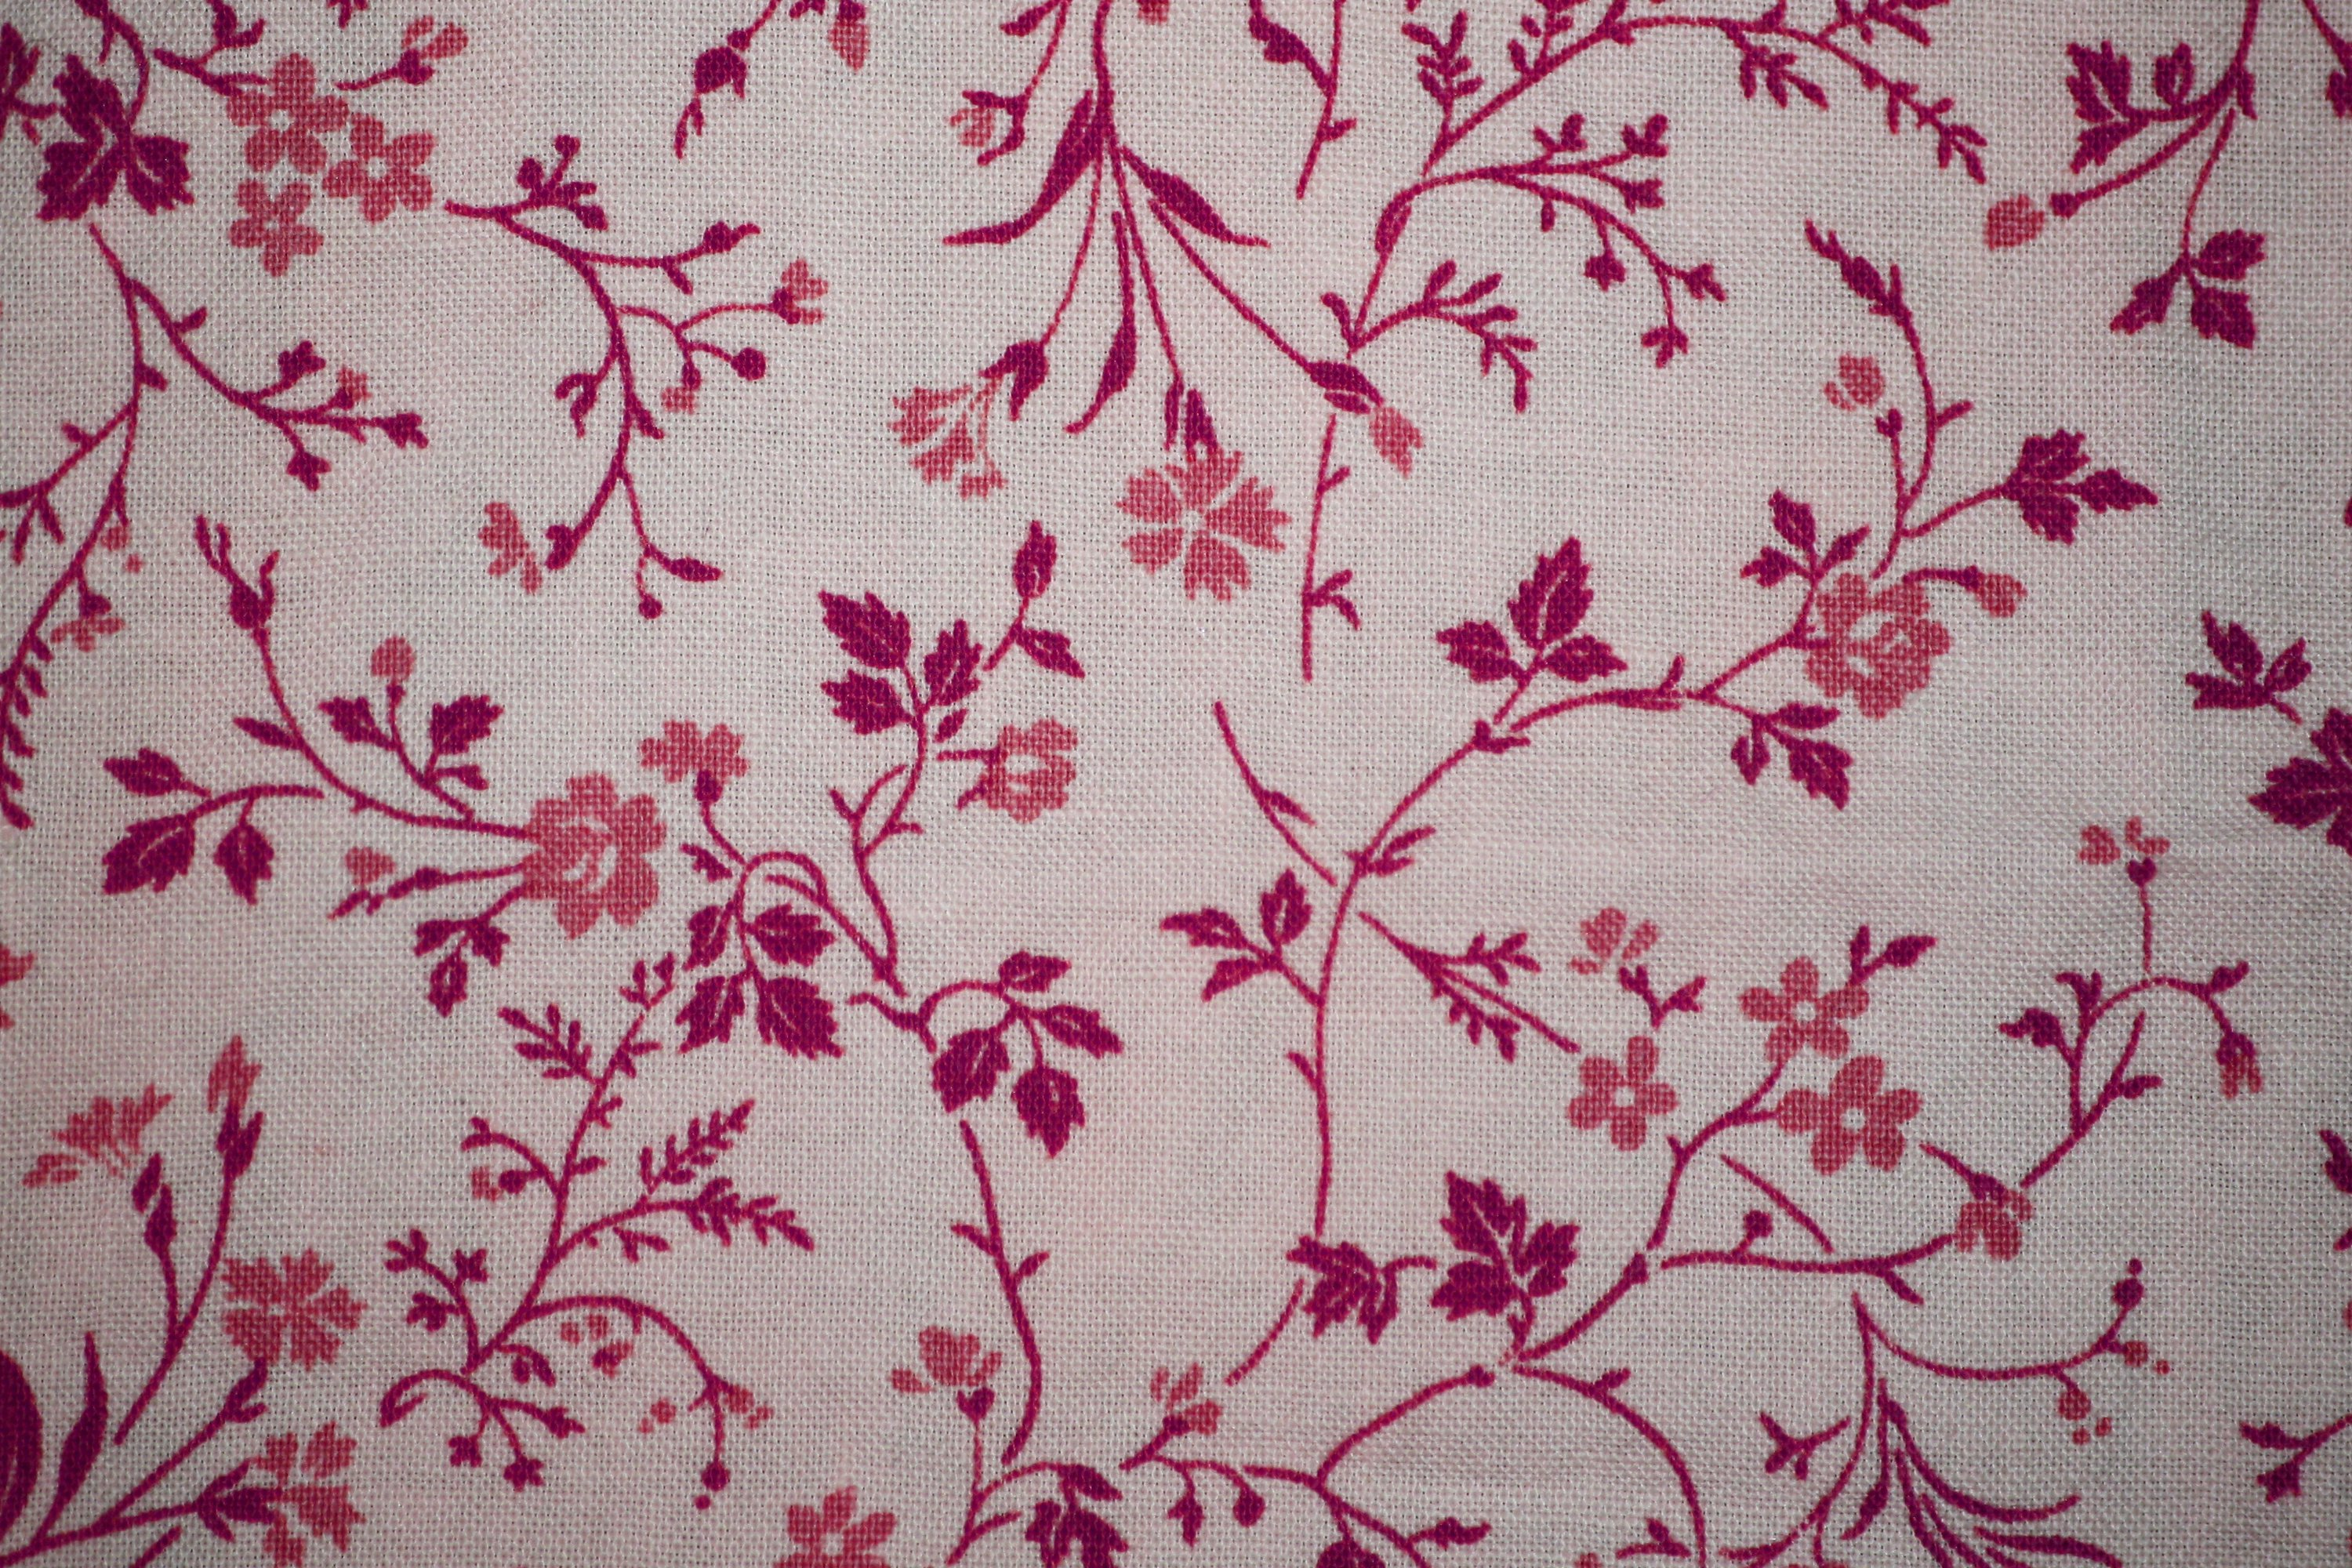 Pink on white floral print fabric texture picture free photograph pink on white floral print fabric texture mightylinksfo